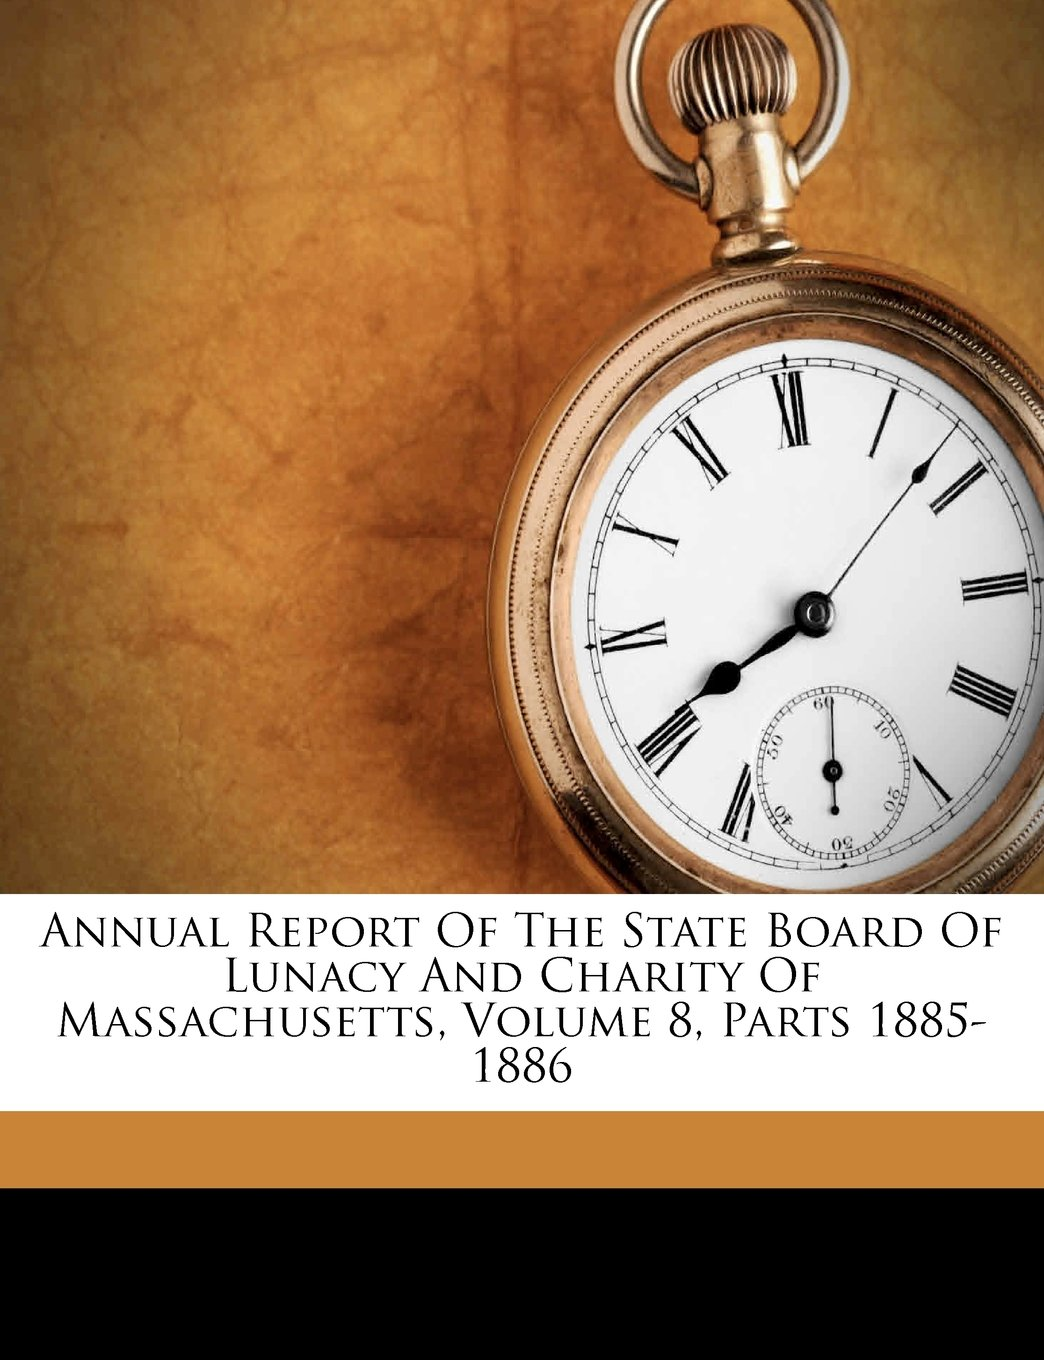 Annual Report Of The State Board Of Lunacy And Charity Of Massachusetts, Volume 8, Parts 1885-1886 ebook